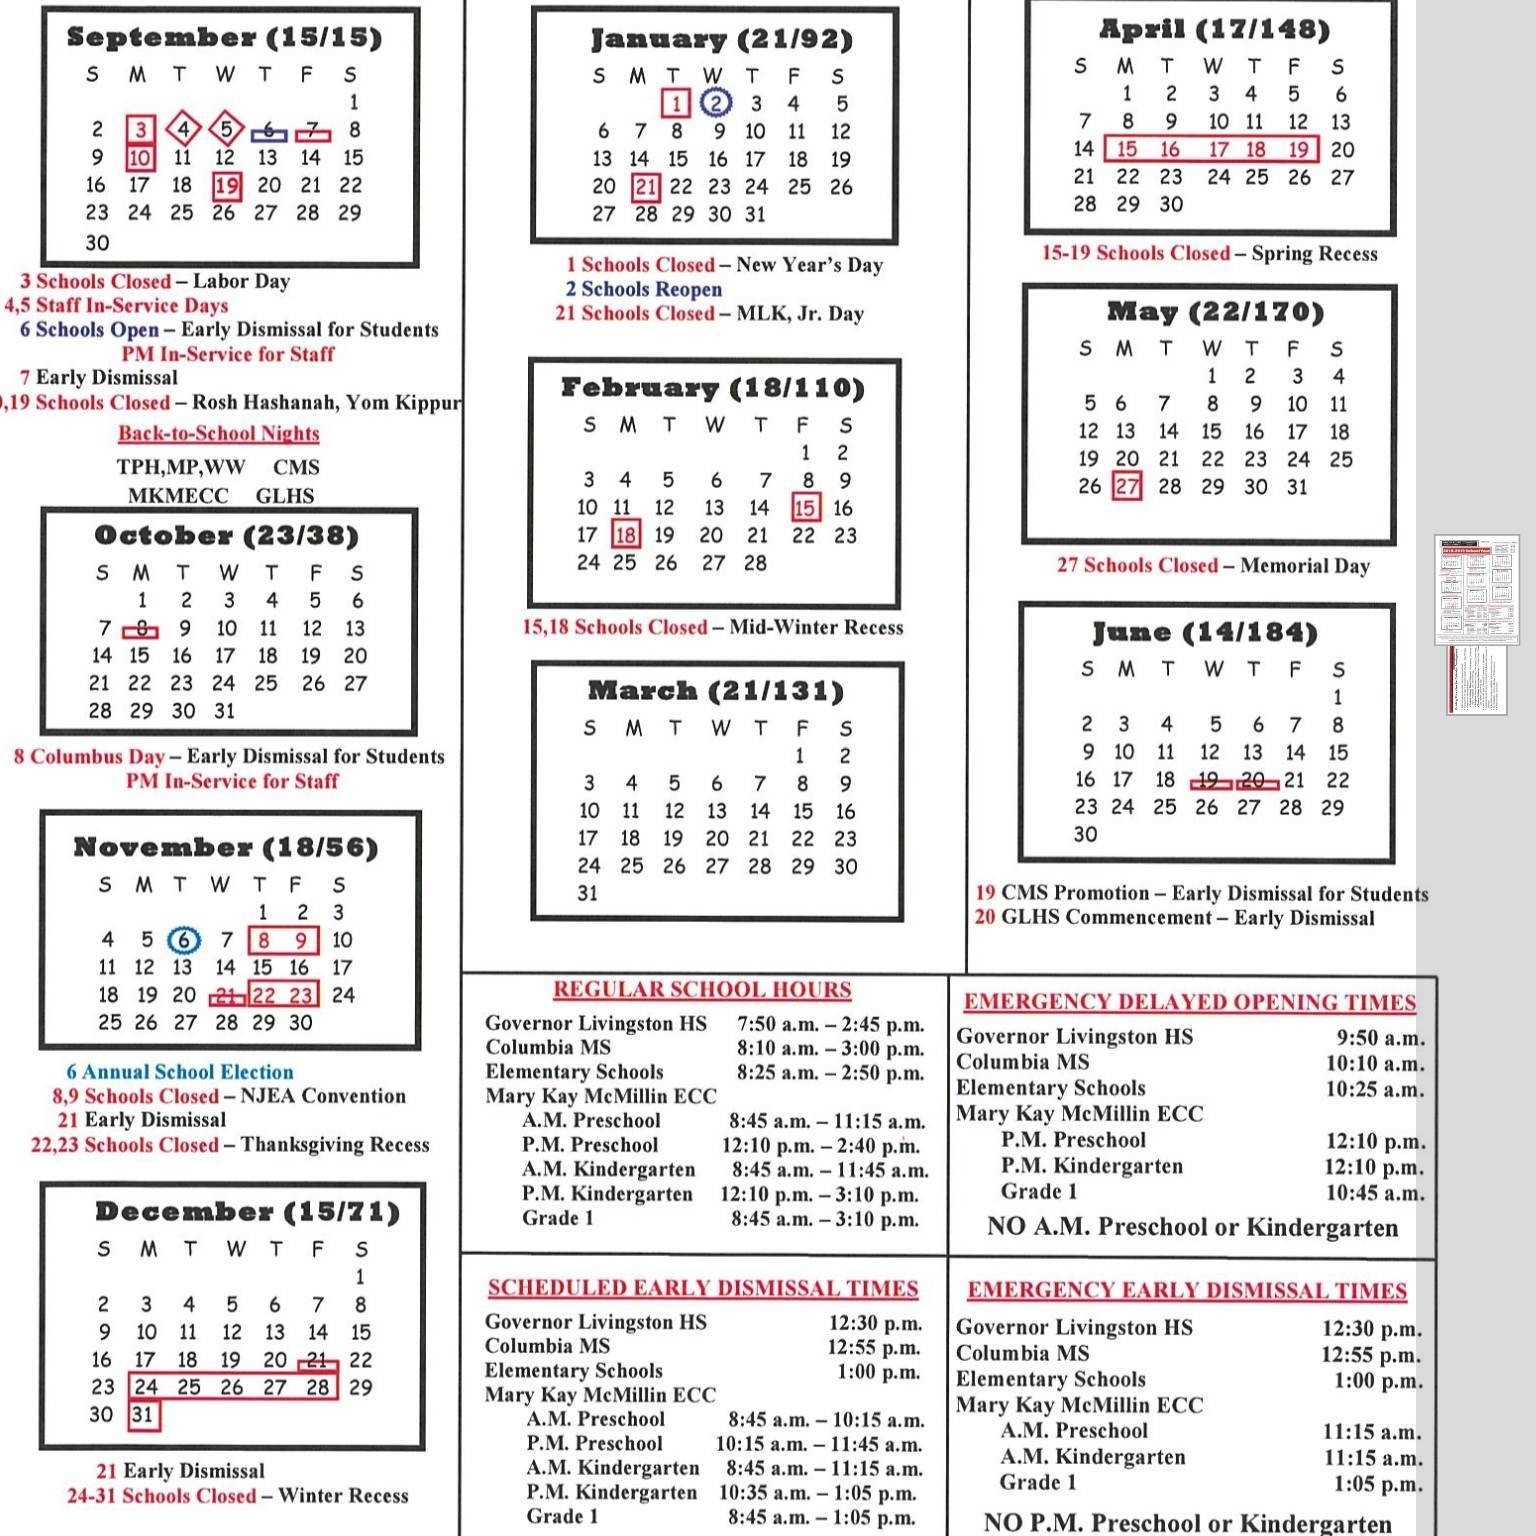 Uc Berkeley Academic Calendar 2018-19 Download For Totally Free pertaining to Berkeley Academic Calender 2019-2020